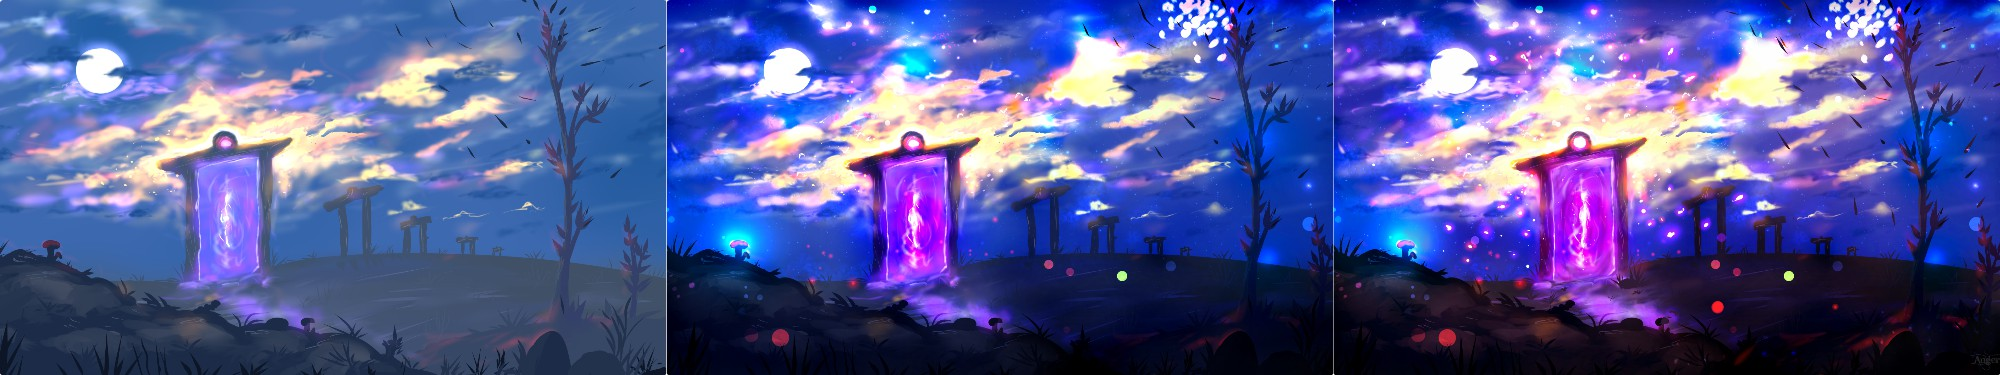 Steps In the Portal by Angerna